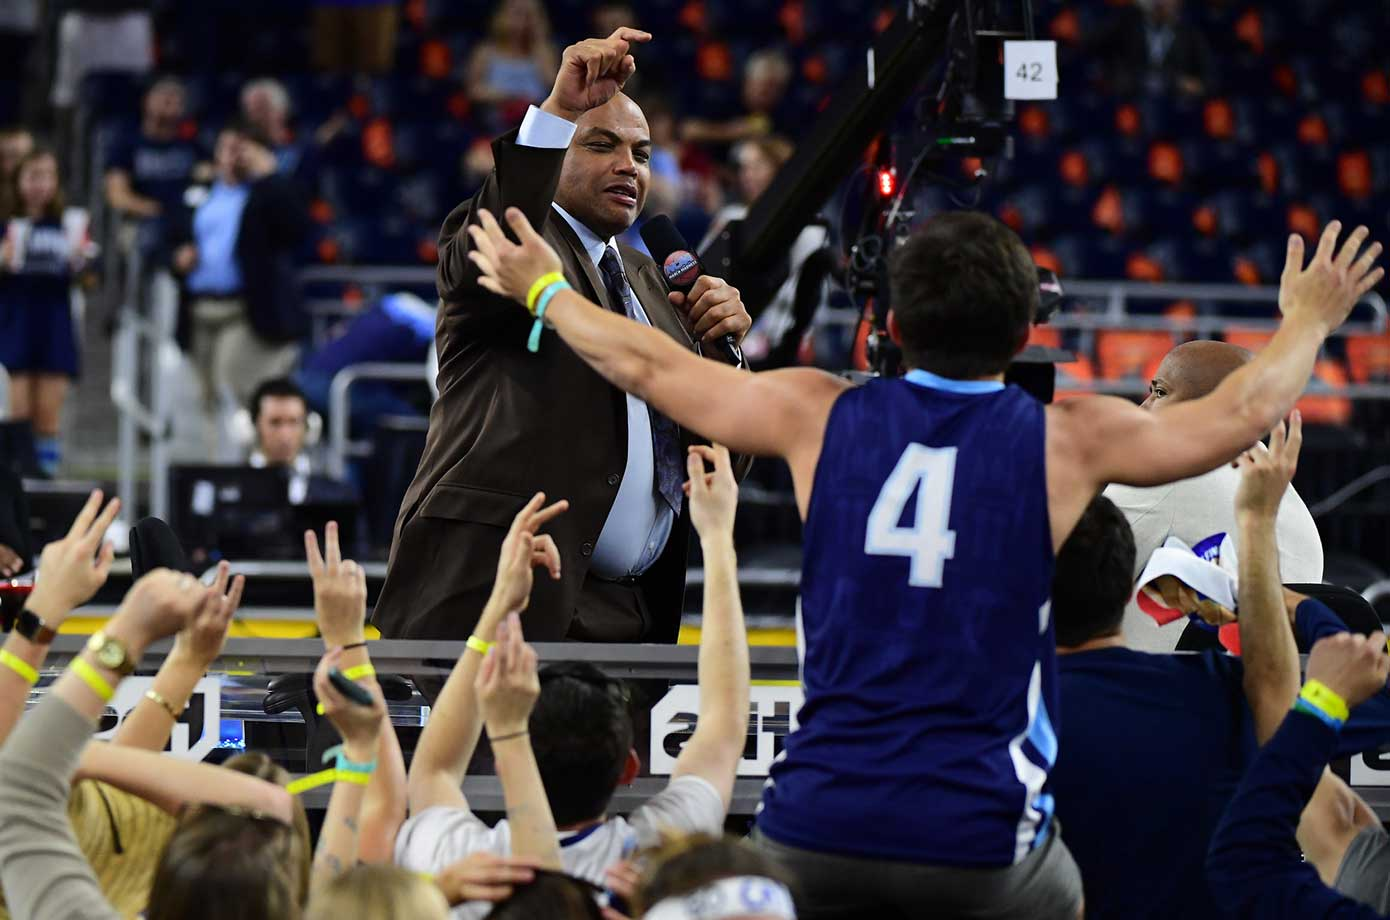 Charles Barkley interacts with Villanova fans before the game.